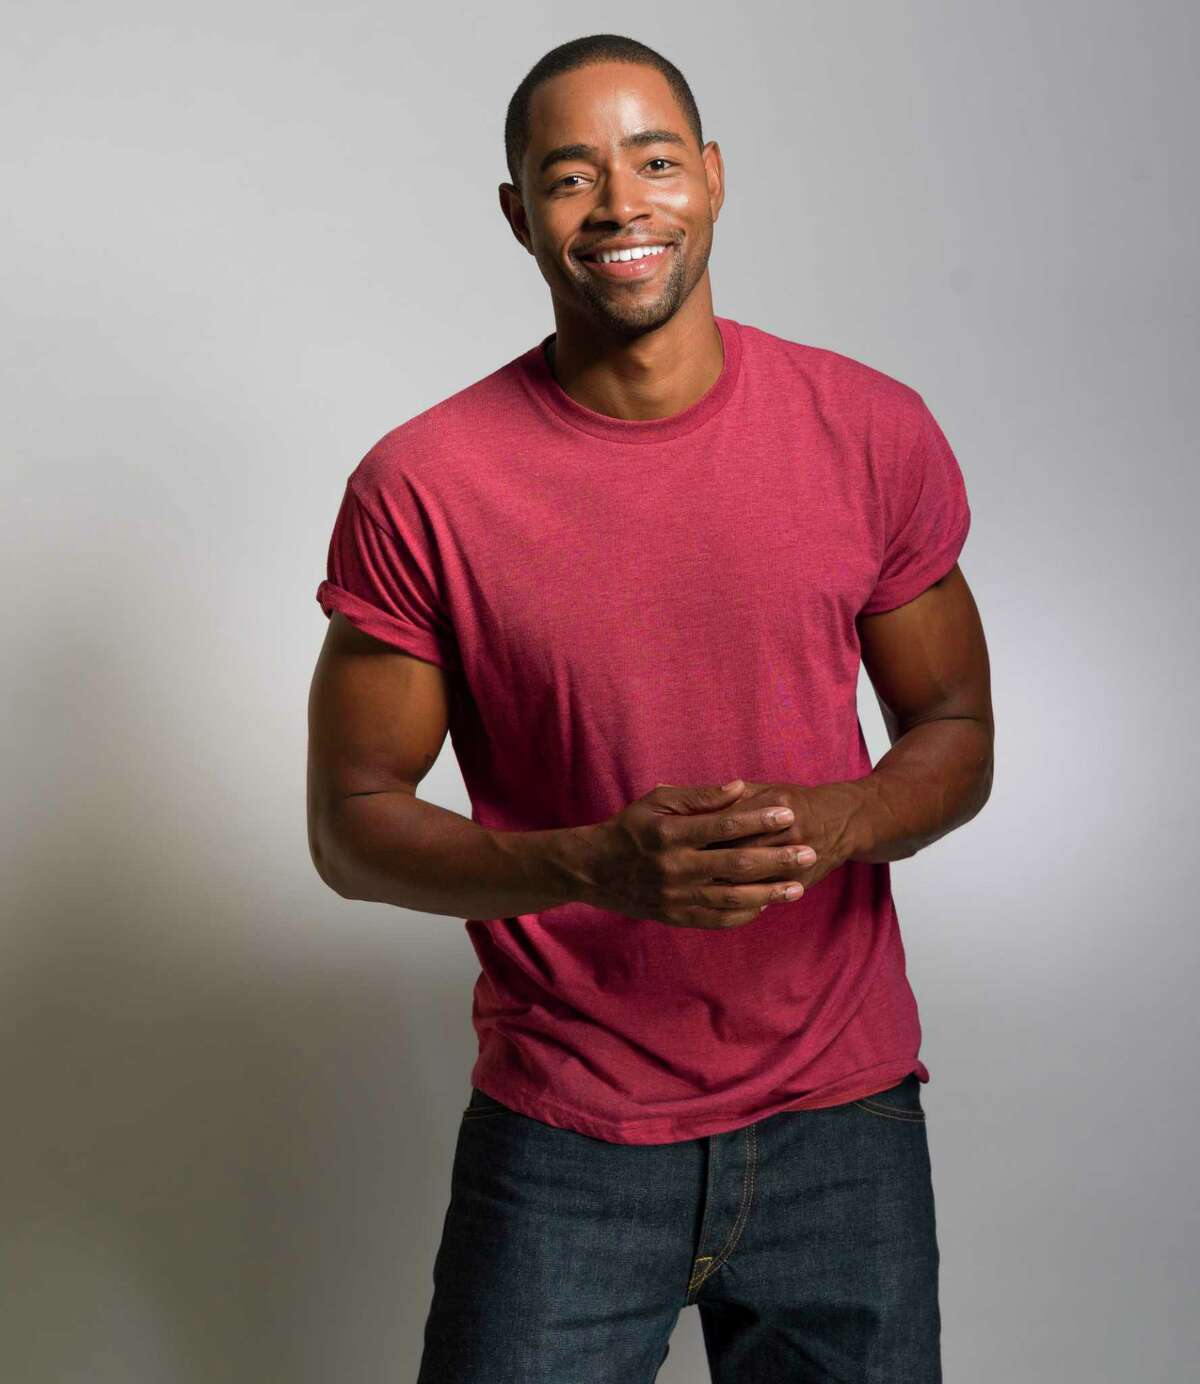 """Jay Ellis in Los Angeles, July 3, 2014. Ellis, familiar as a wide receiver in A centsa'A?""""The GameA centsa'A on BET, steps into a different profession for an appearance on A centsa'A?""""Masters of SexA centsa'A on Showtime. (Sam Comen/The New York Times) -- PHOTO MOVED IN ADVANCE AND NOT FOR USE - ONLINE OR IN PRINT - BEFORE AUG. 10, 2014. ORG XMIT: XNYT53"""